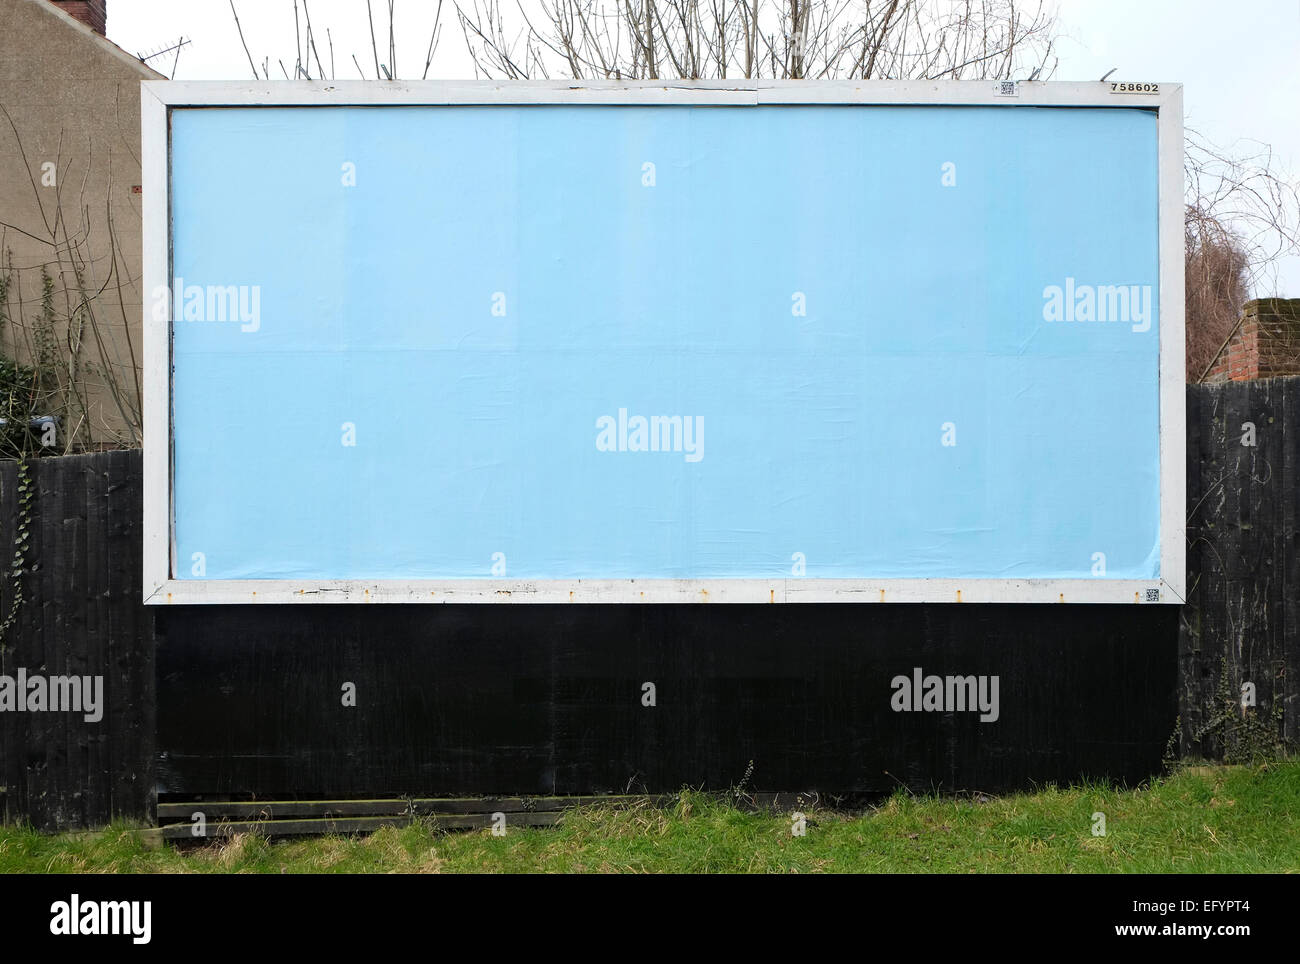 empty advertising billboard hoarding poster board display - Stock Image